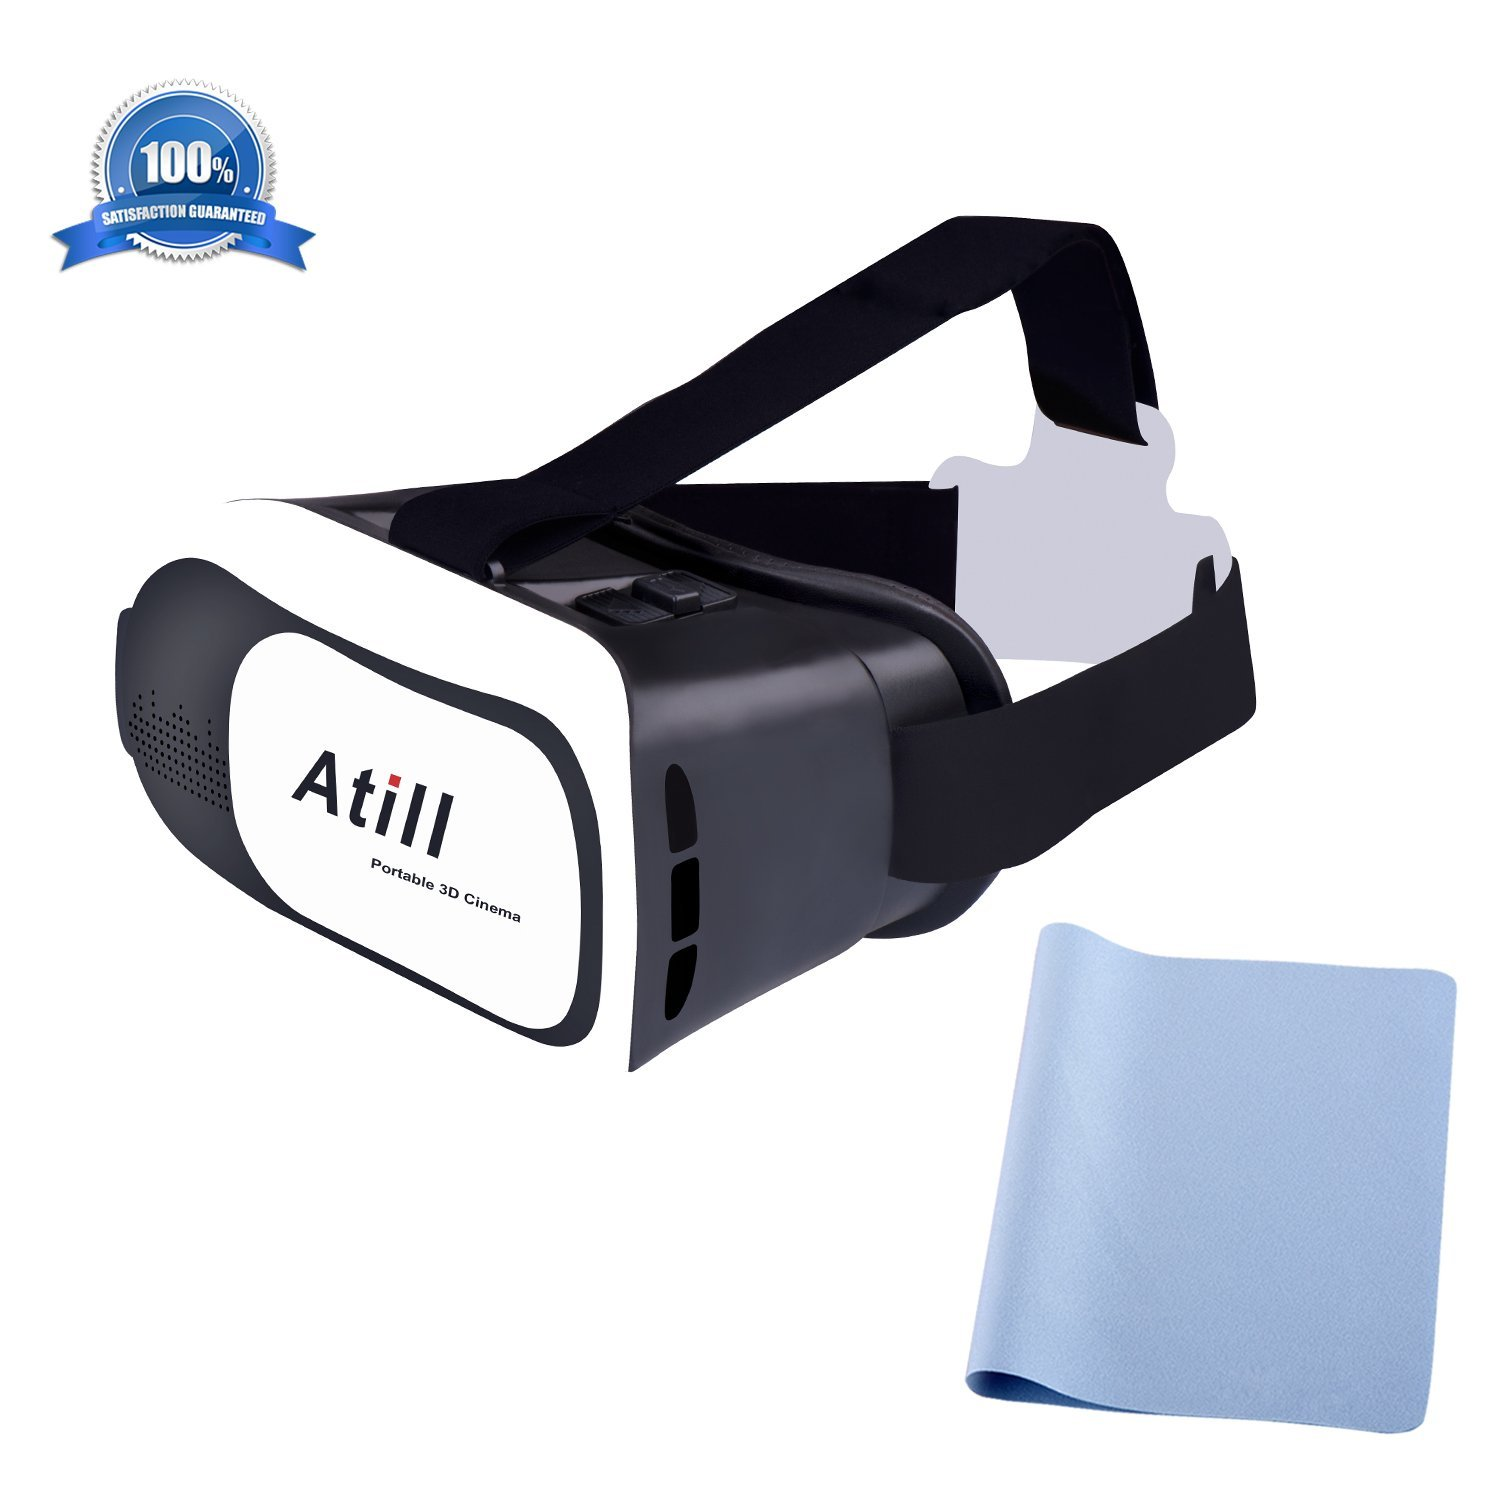 ab5f3818aa7 Atill 3D VR Virtual Reality Headset 3D Glasses For 3D Movies and  Games(Focal and Pupil Distance Adjustable Headset for iPhone